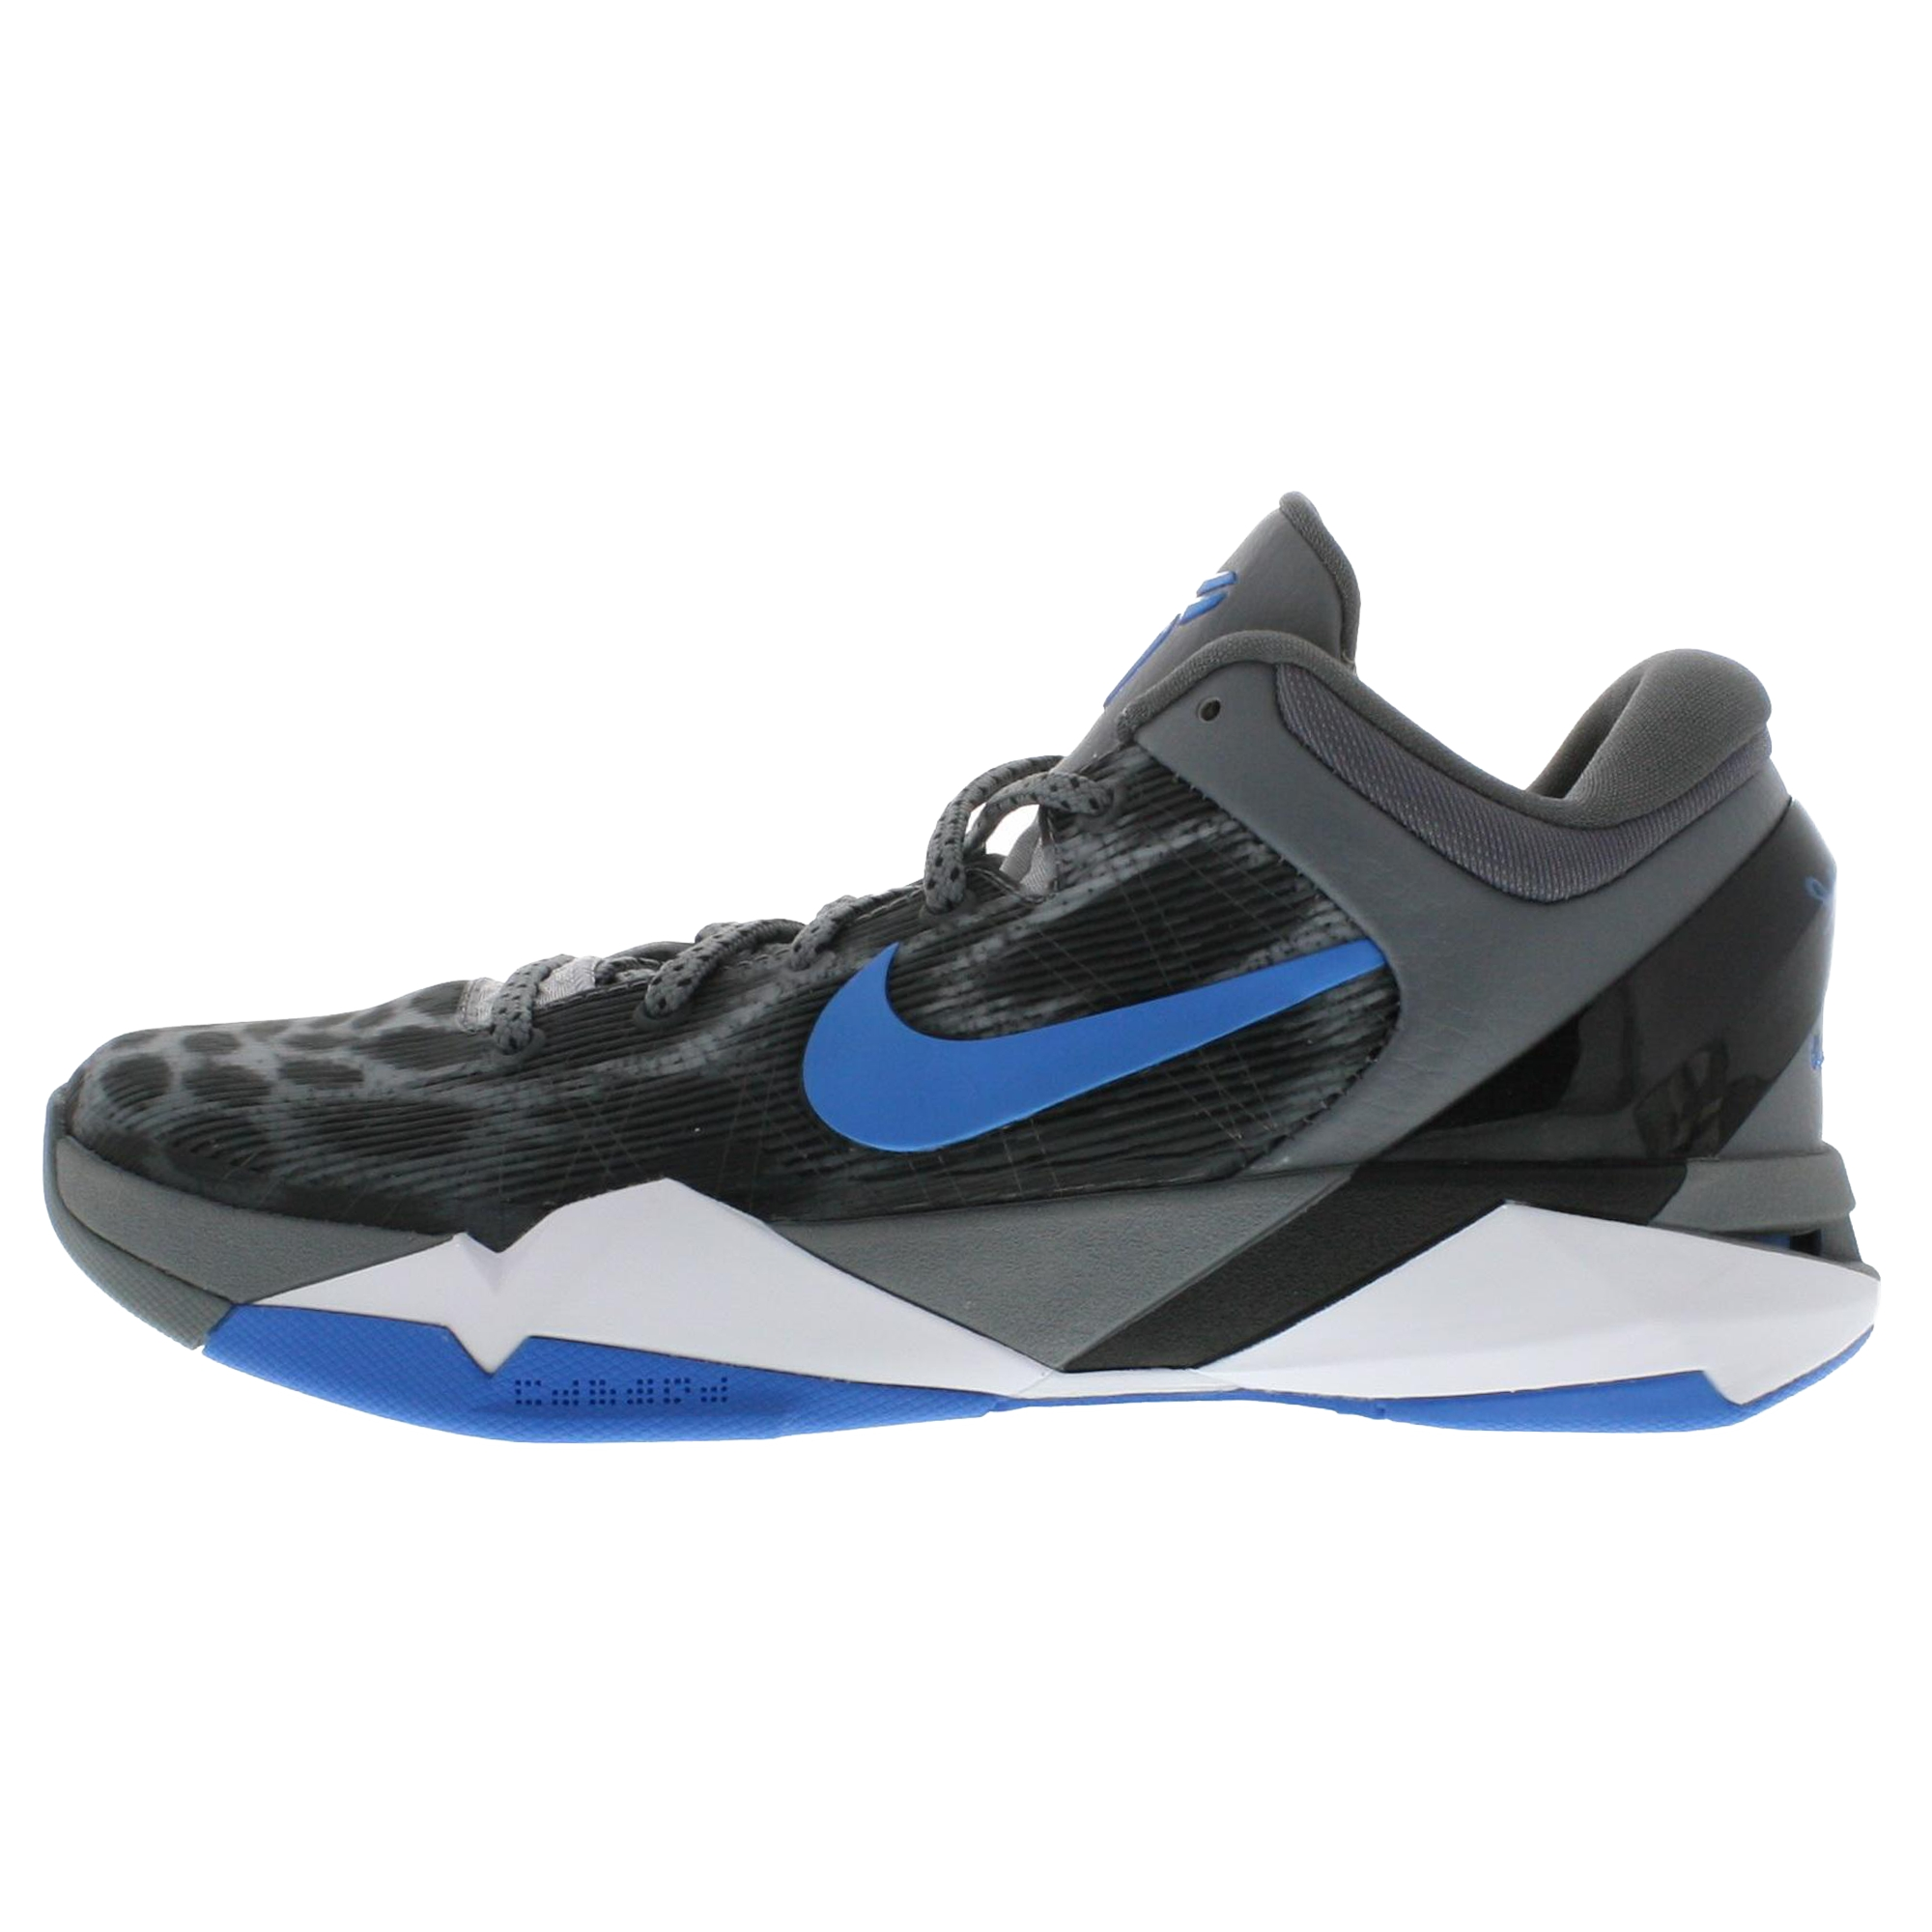 cheap for discount a642f 532e9 Nike Zoom Kobe Bryant VII System Erkek Basketbol Ayakkabısı